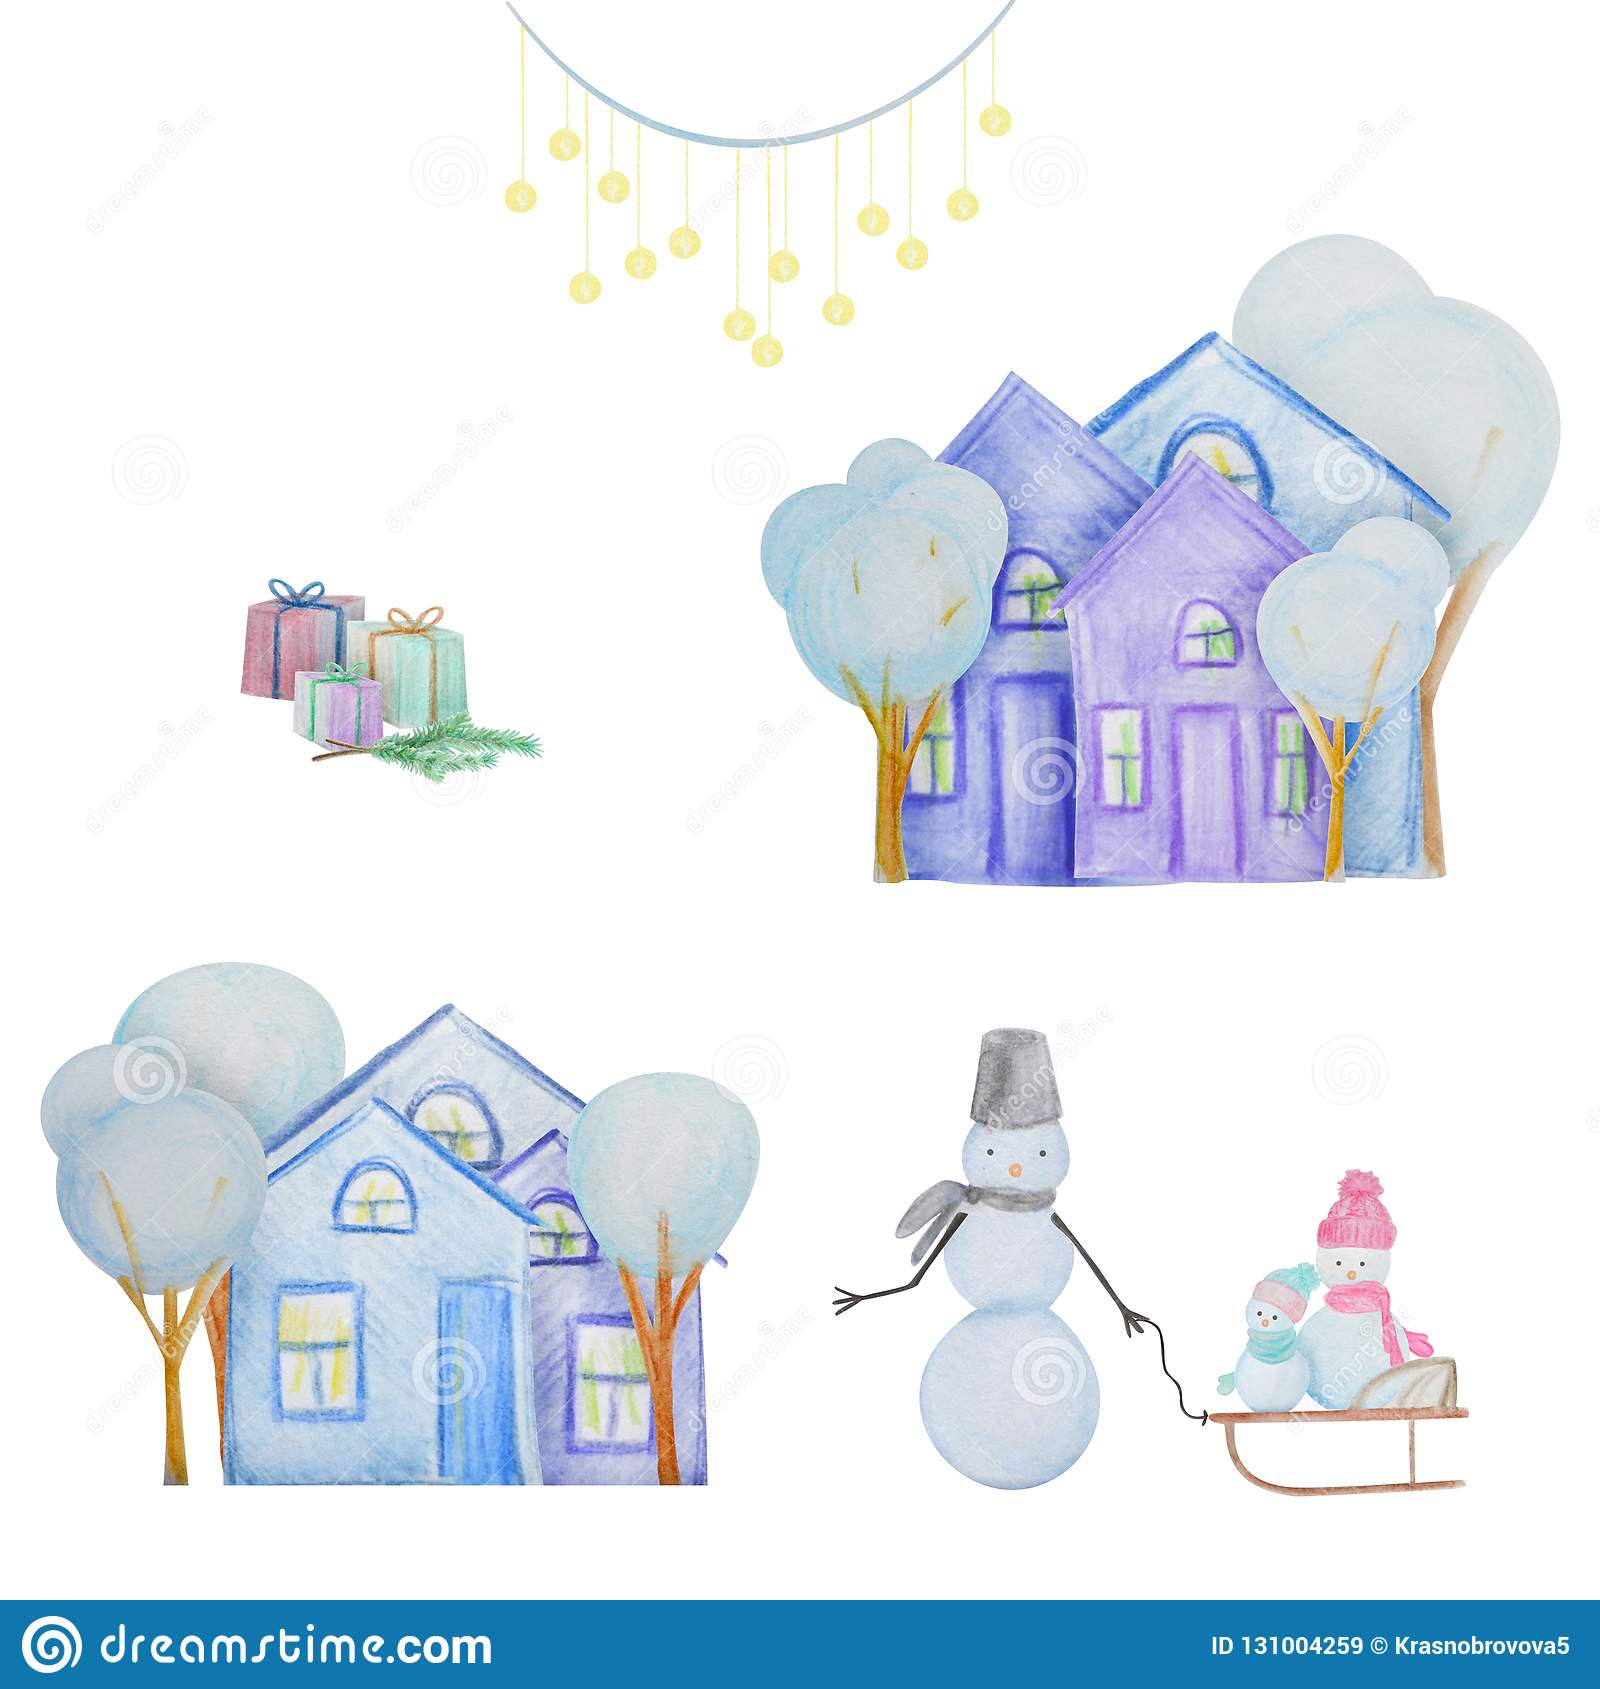 Winter set with snowmen and houses painted with colored watercolor pencils